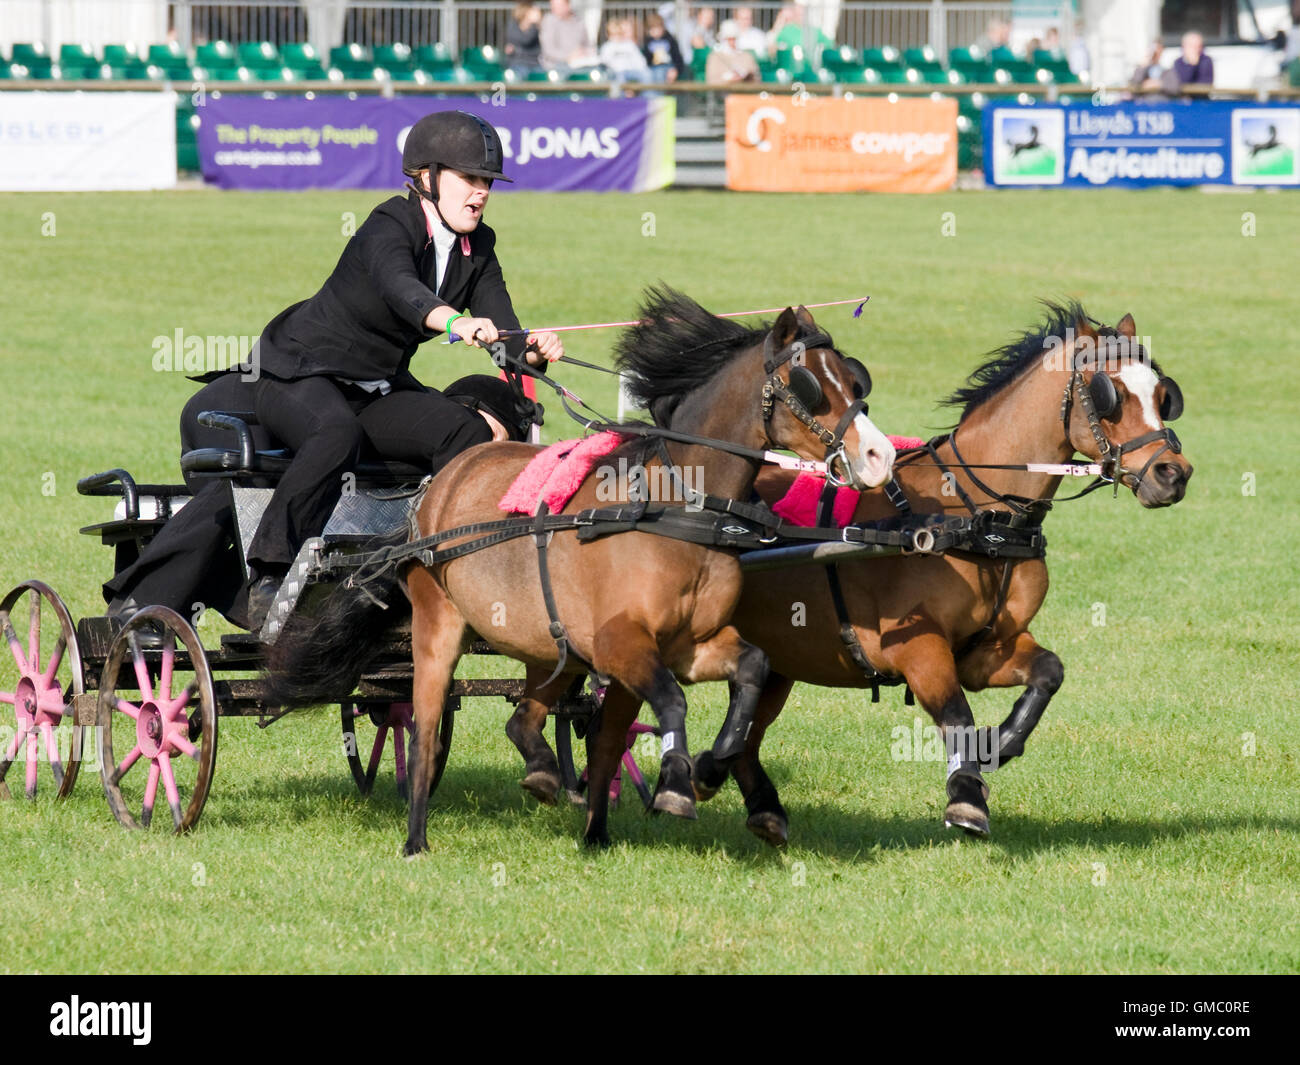 Ponies and trap being raced. - Stock Image